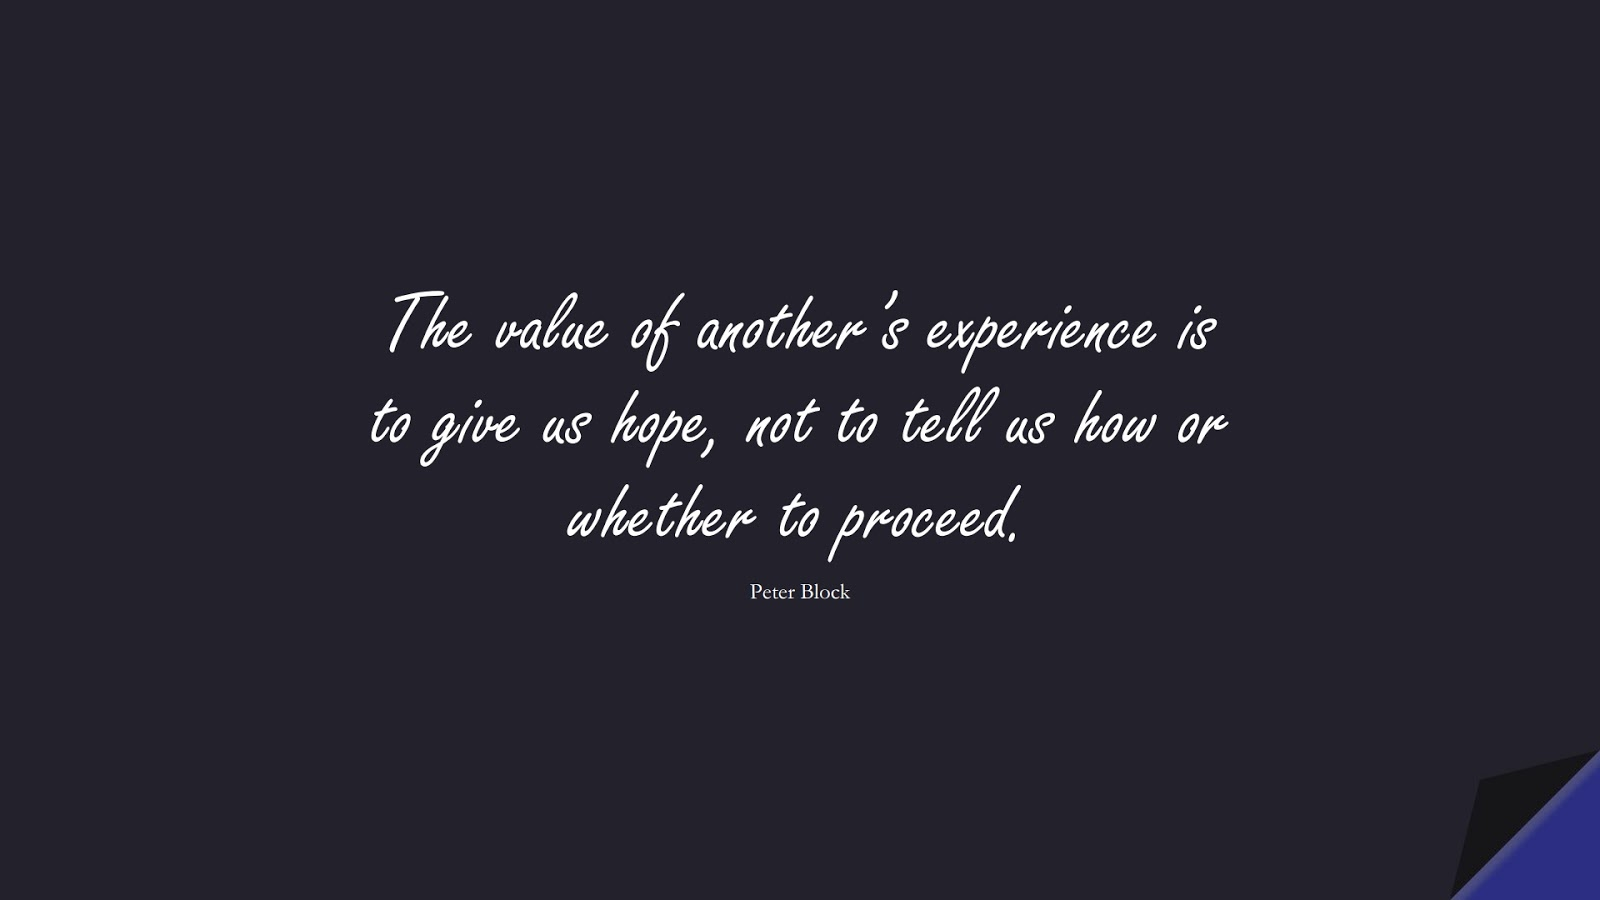 The value of another's experience is to give us hope, not to tell us how or whether to proceed. (Peter Block);  #HopeQuotes